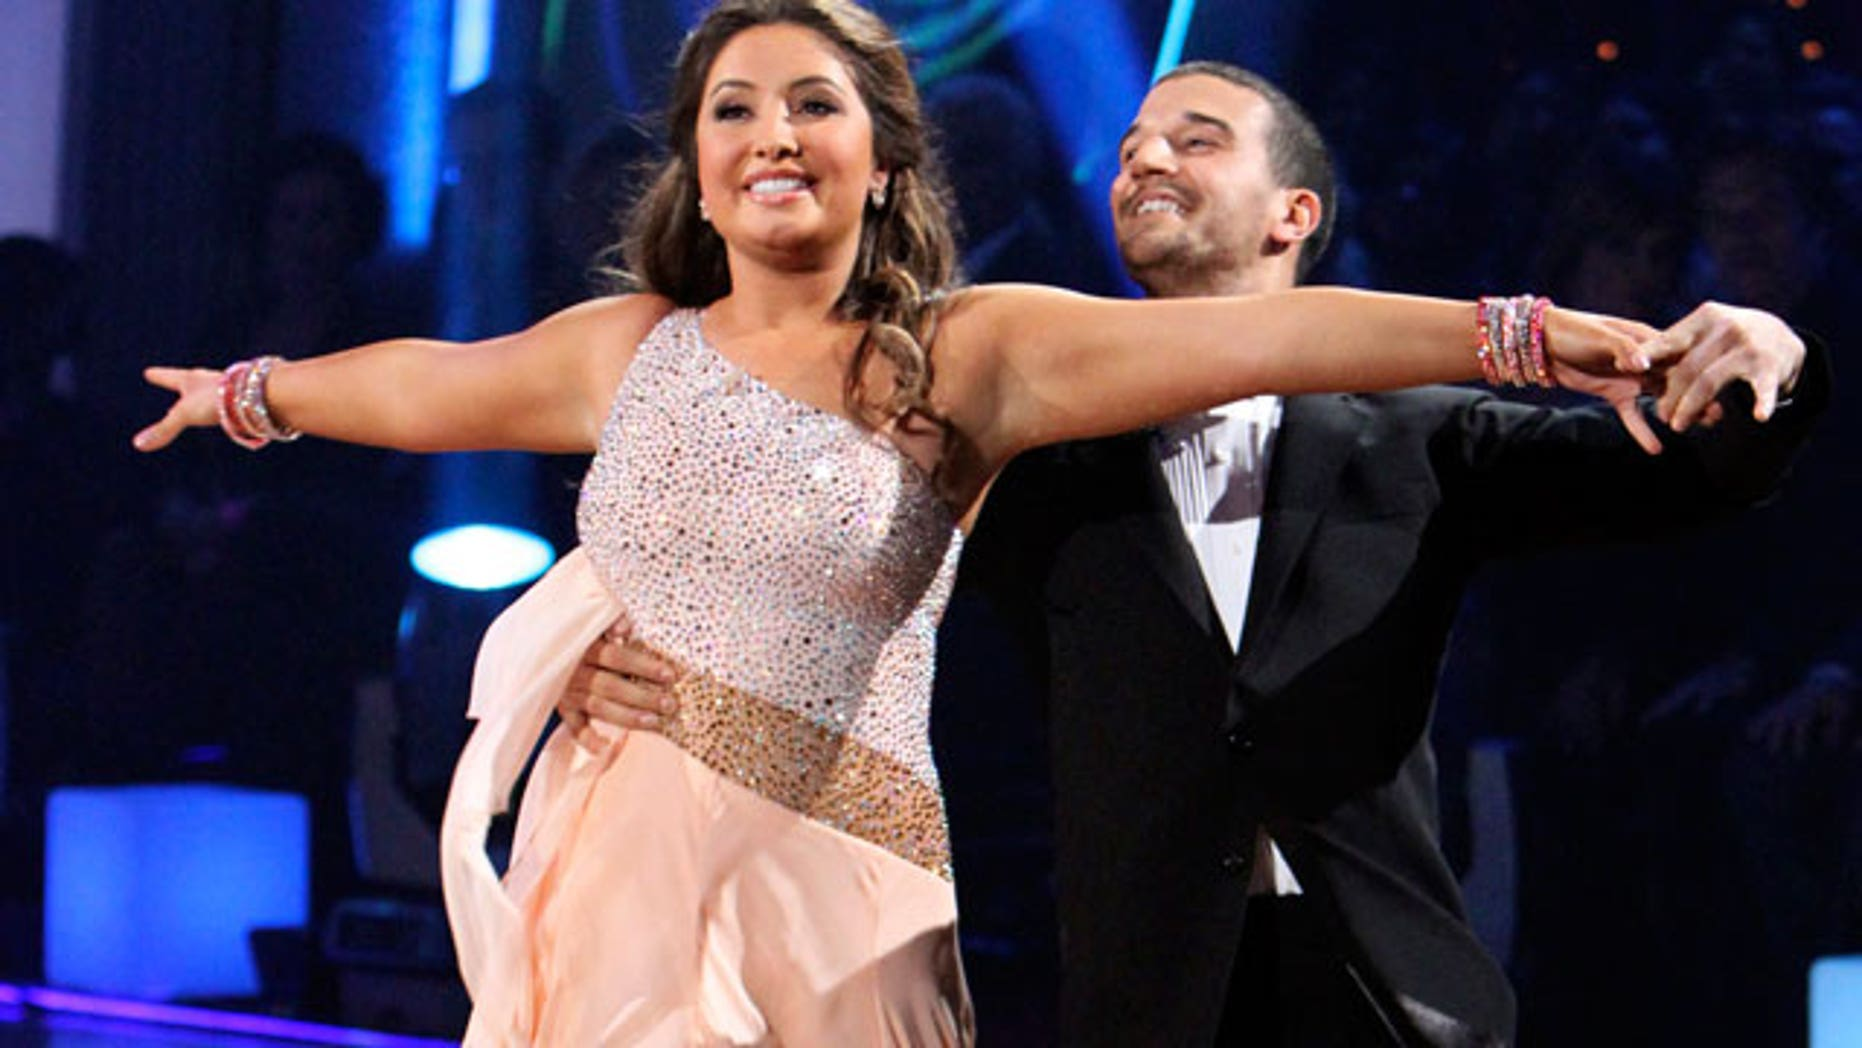 """Nov. 1: In this publicity image released by ABC, Bristol Palin, left, and her partner Mark Ballas perform on the celebrity dance competition series, """"Dancing with the Stars."""""""